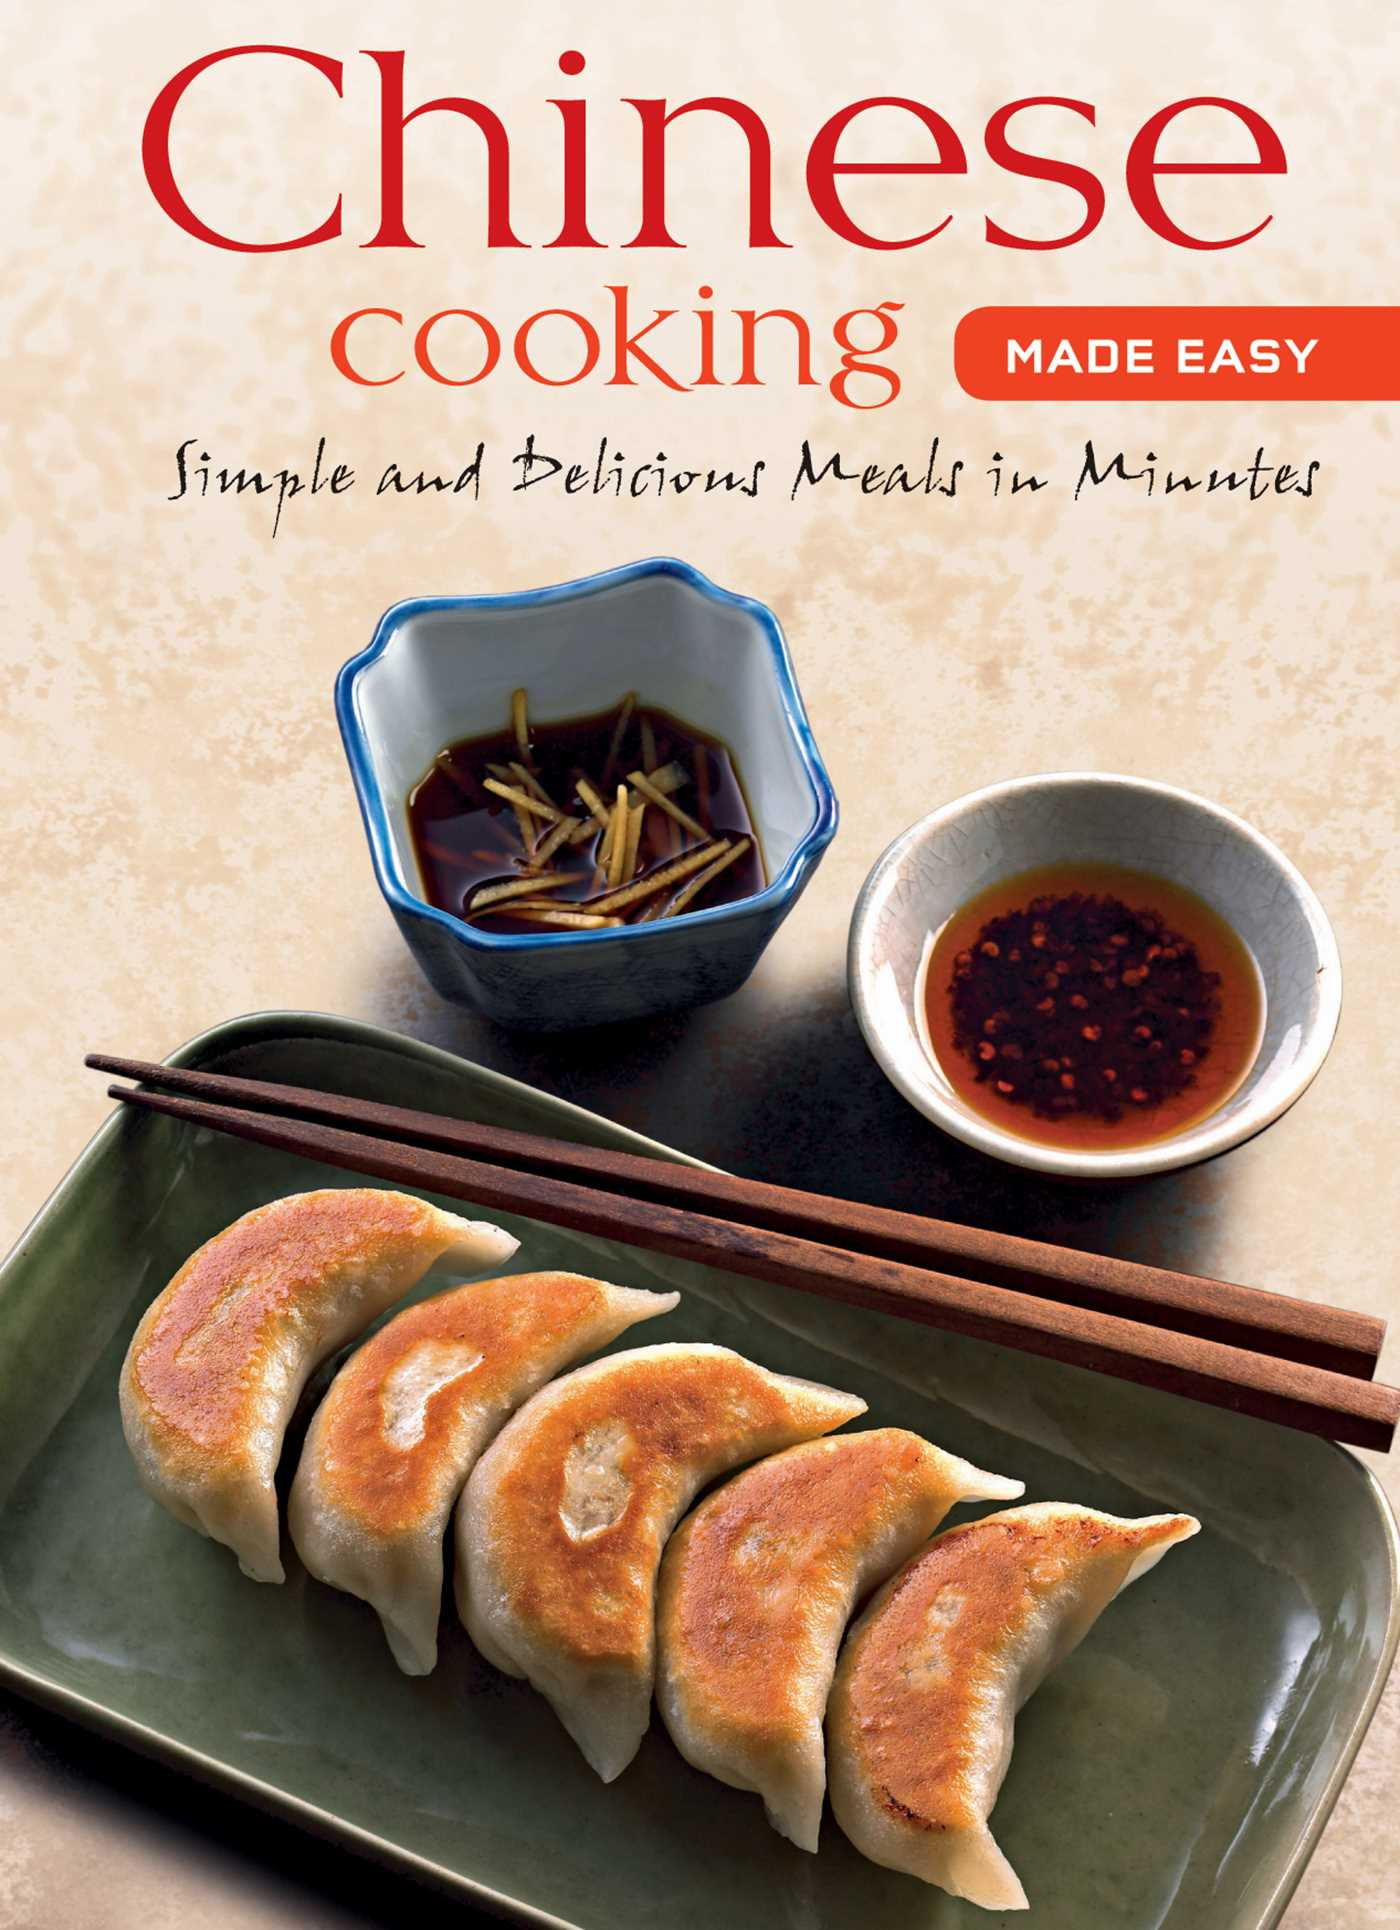 Chinese cooking made easy 9780804840460 hr